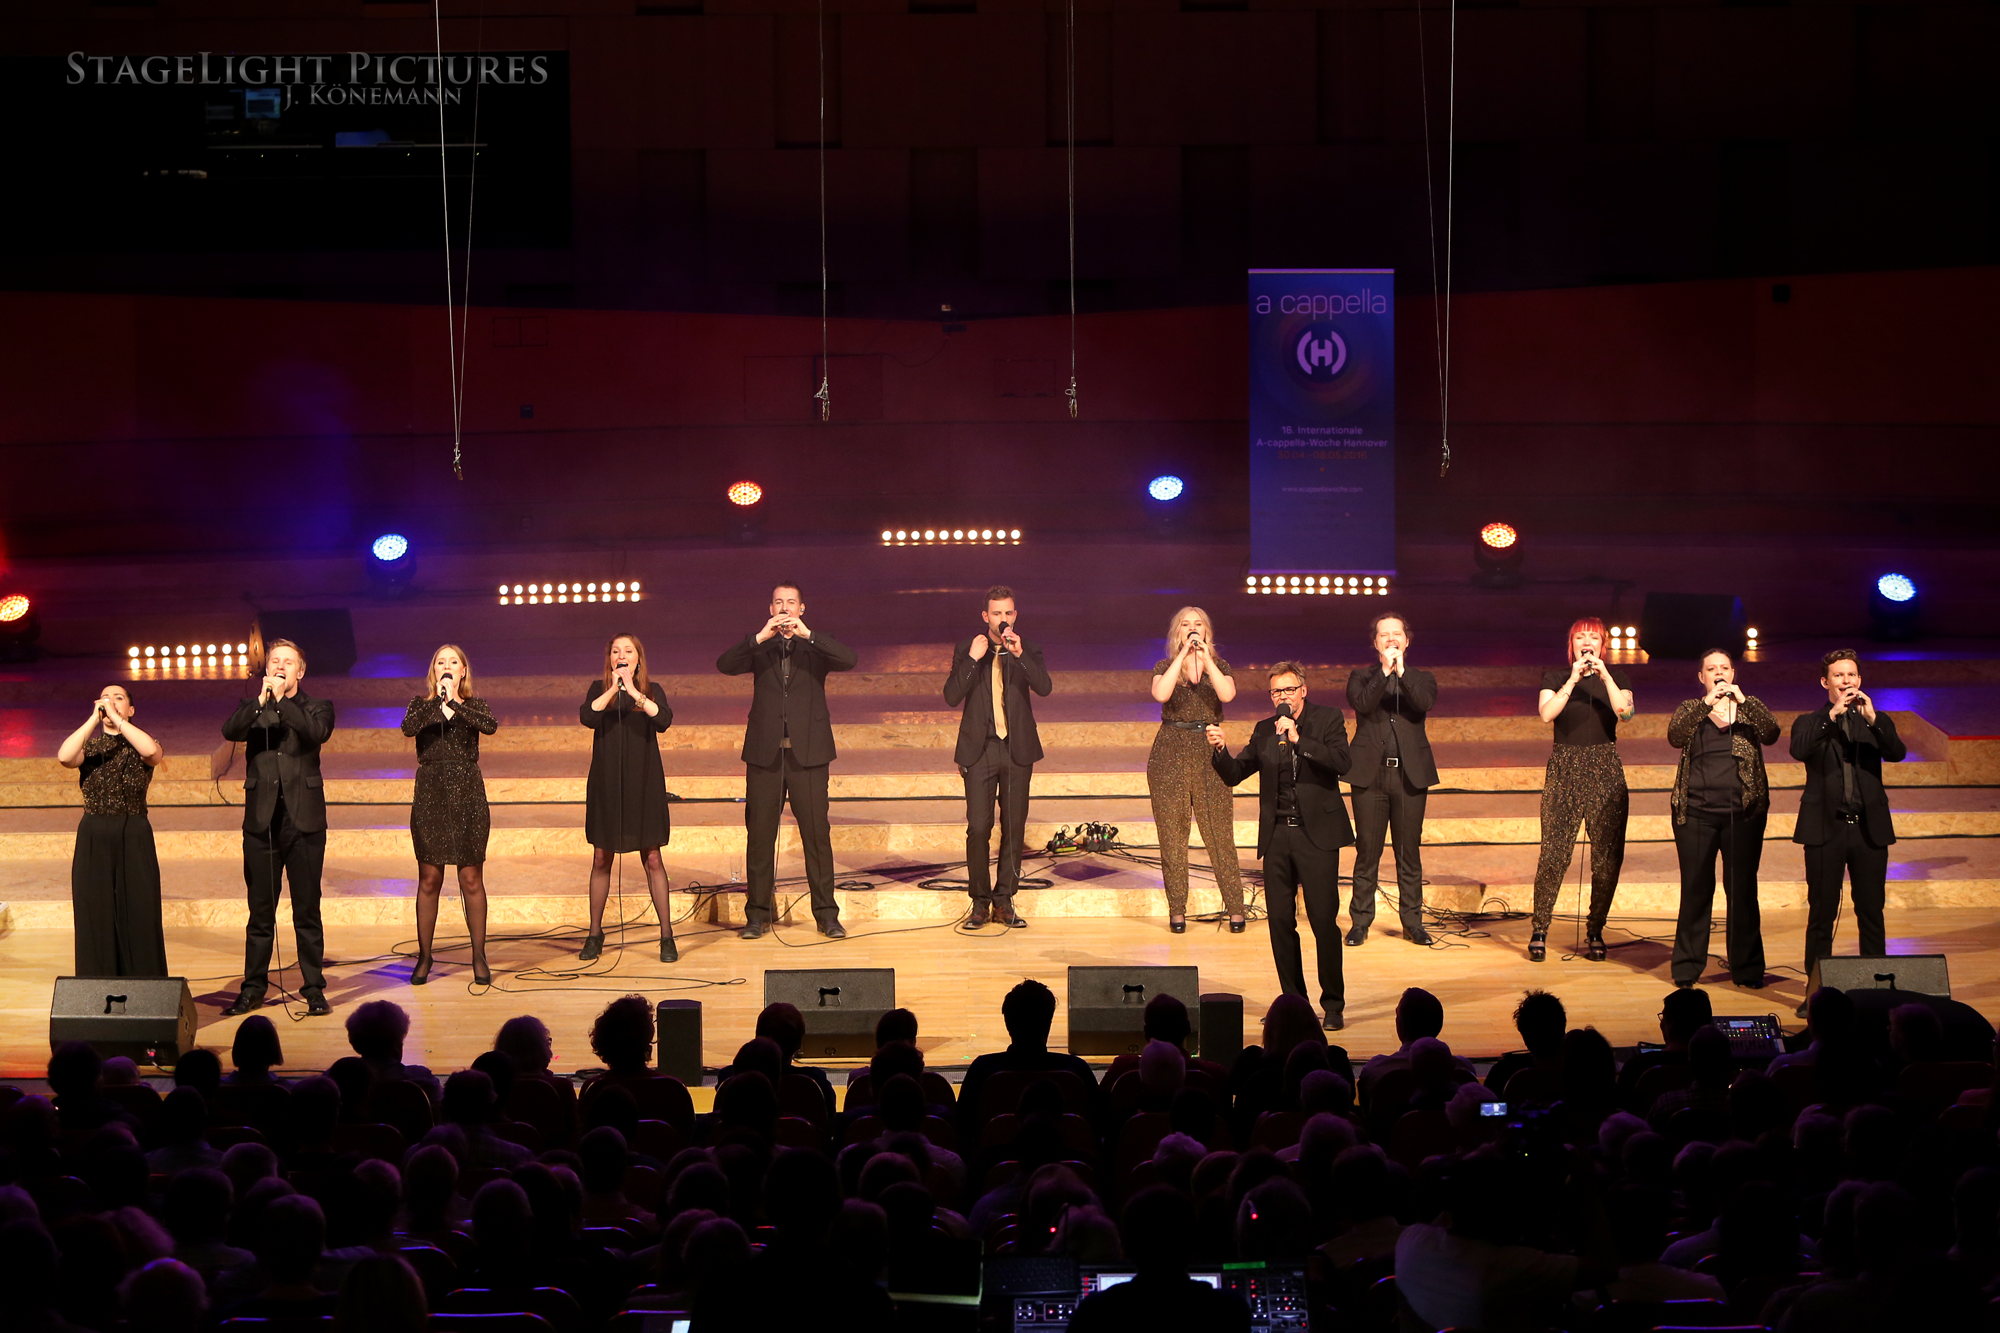 Internationale A-cappella-Woche Hannover, Großer Sendesaal im NDR, Germany